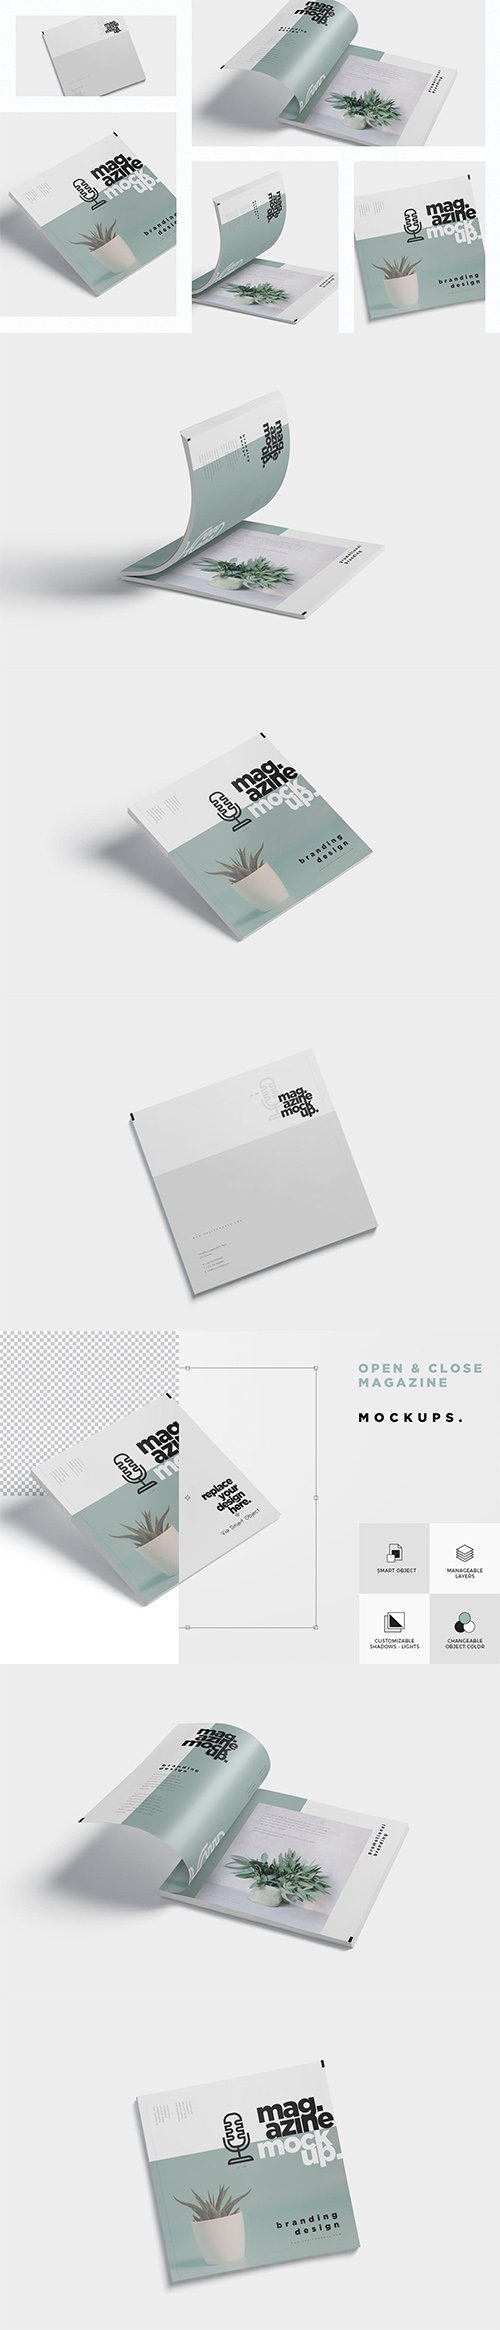 Open and Close Magazine Mockups PSD